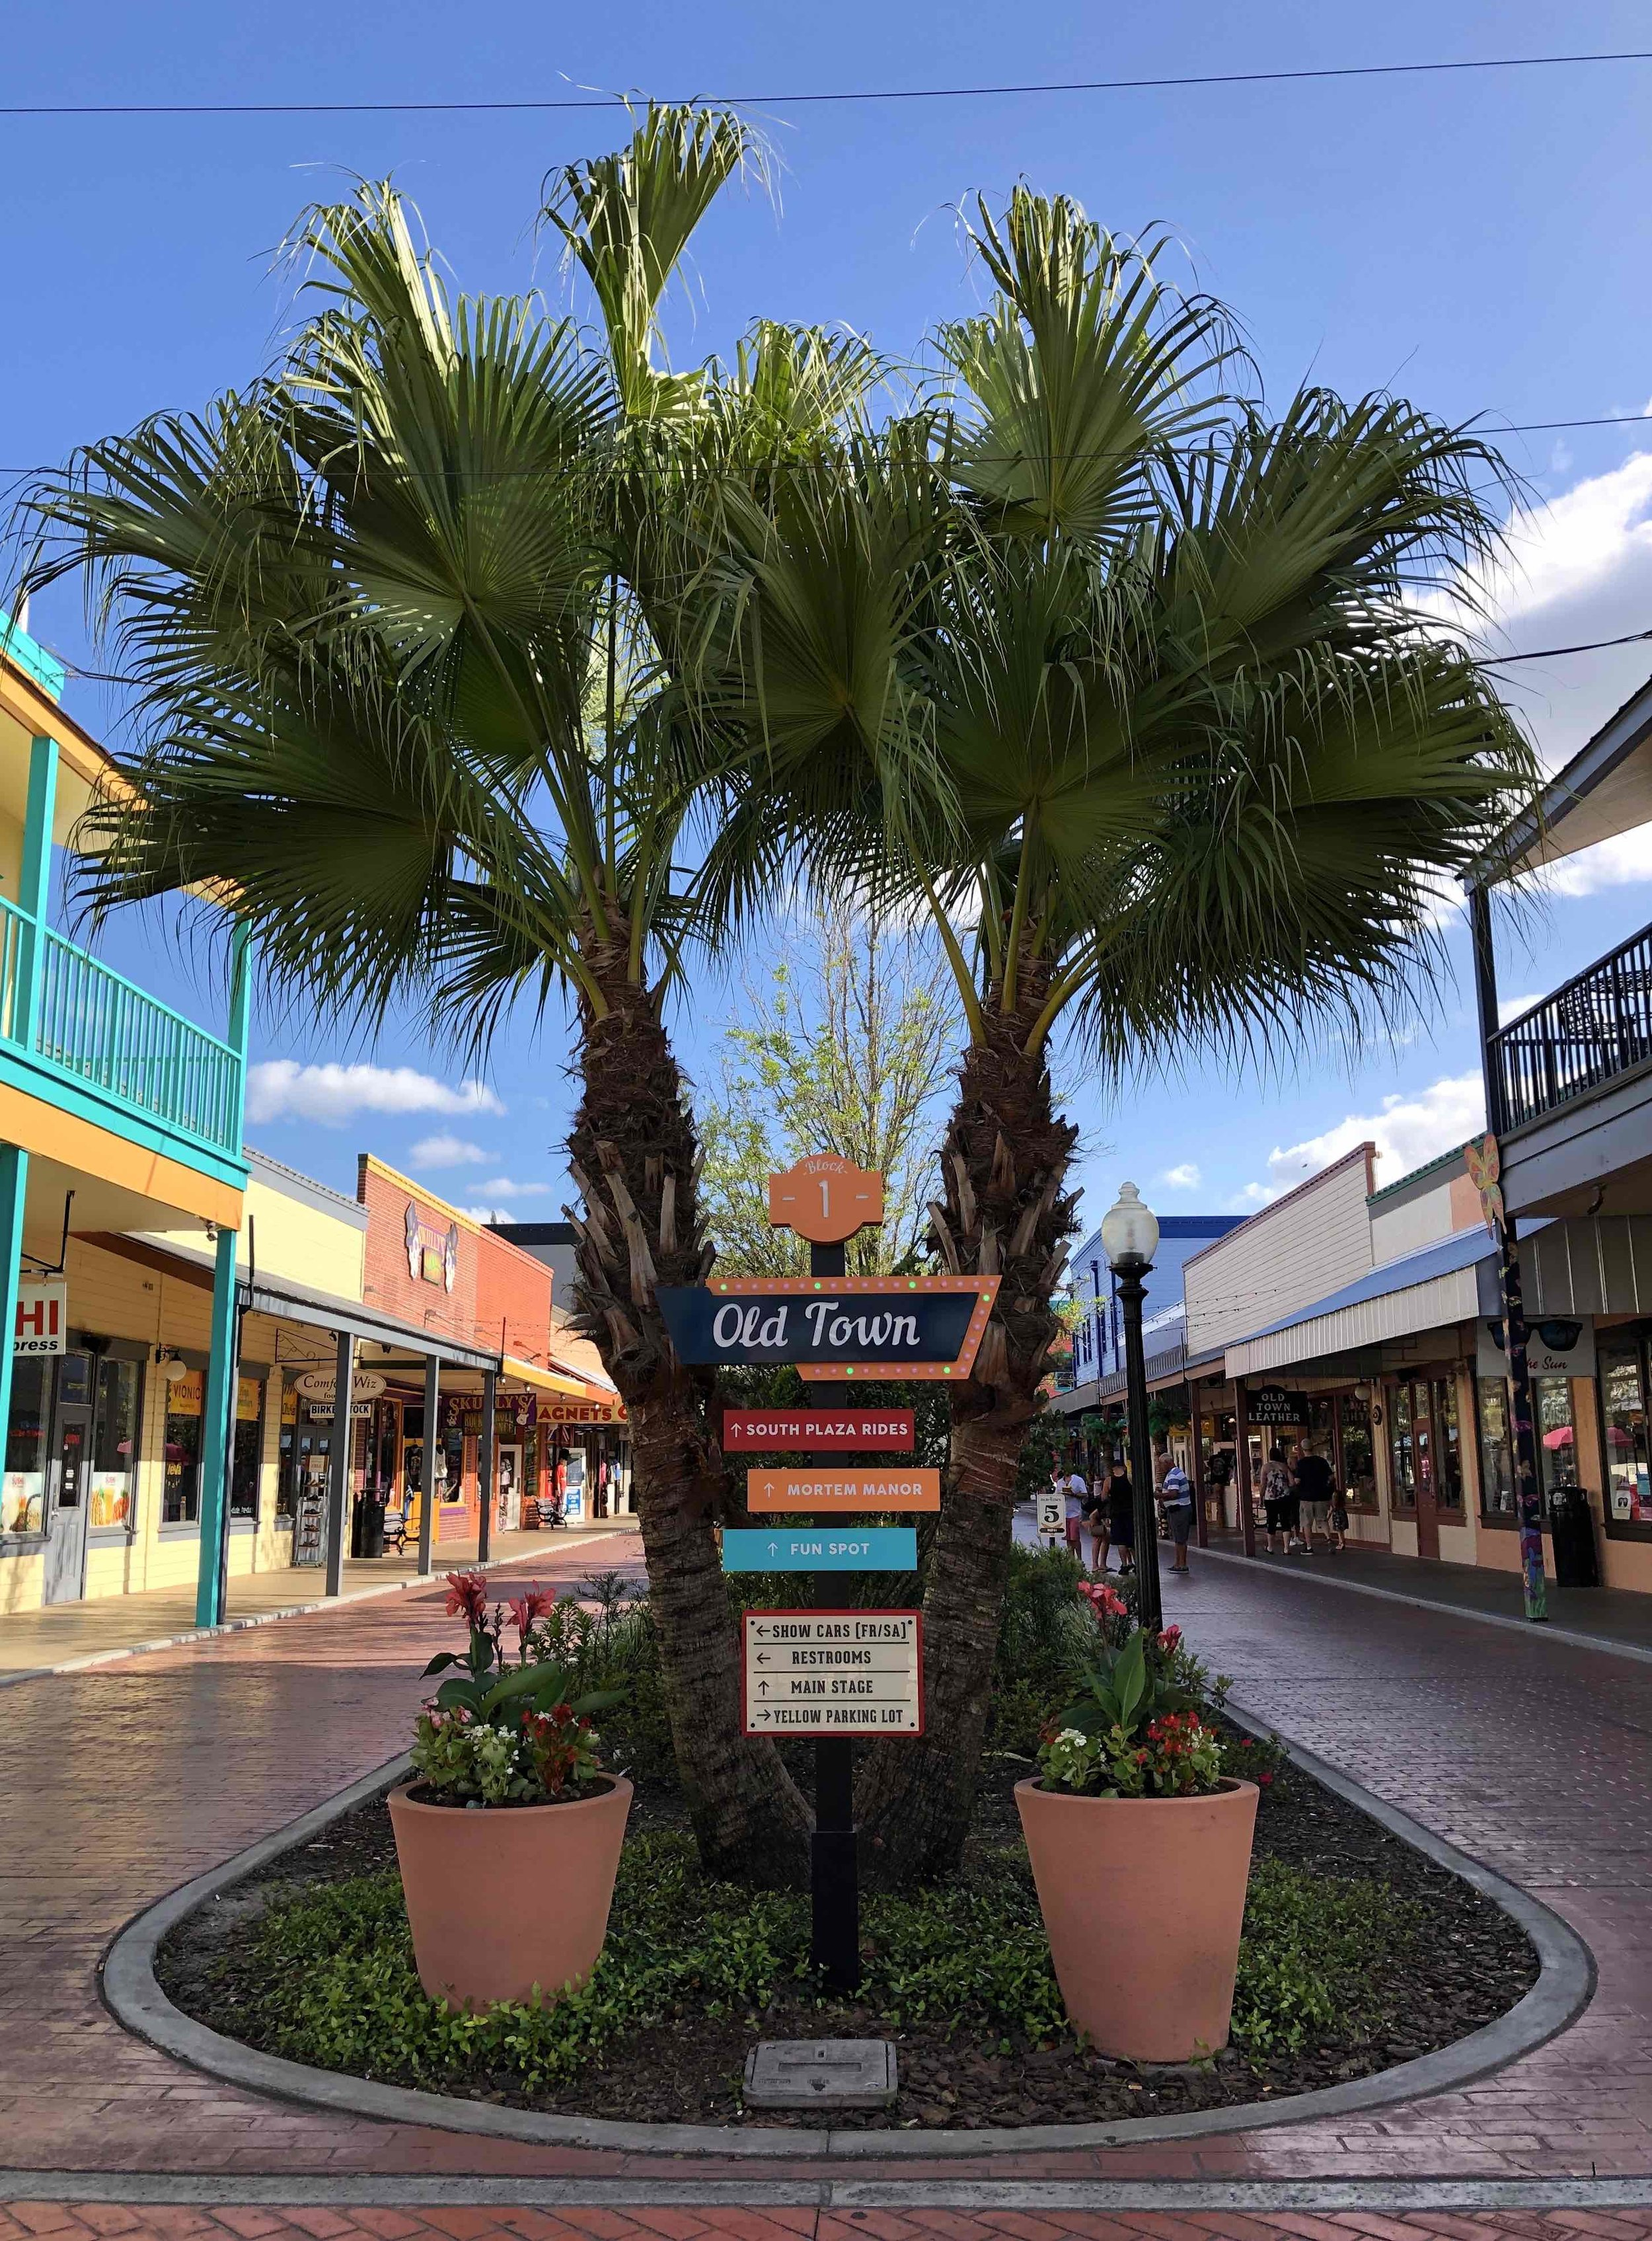 Old Town Kissimmee, Florida